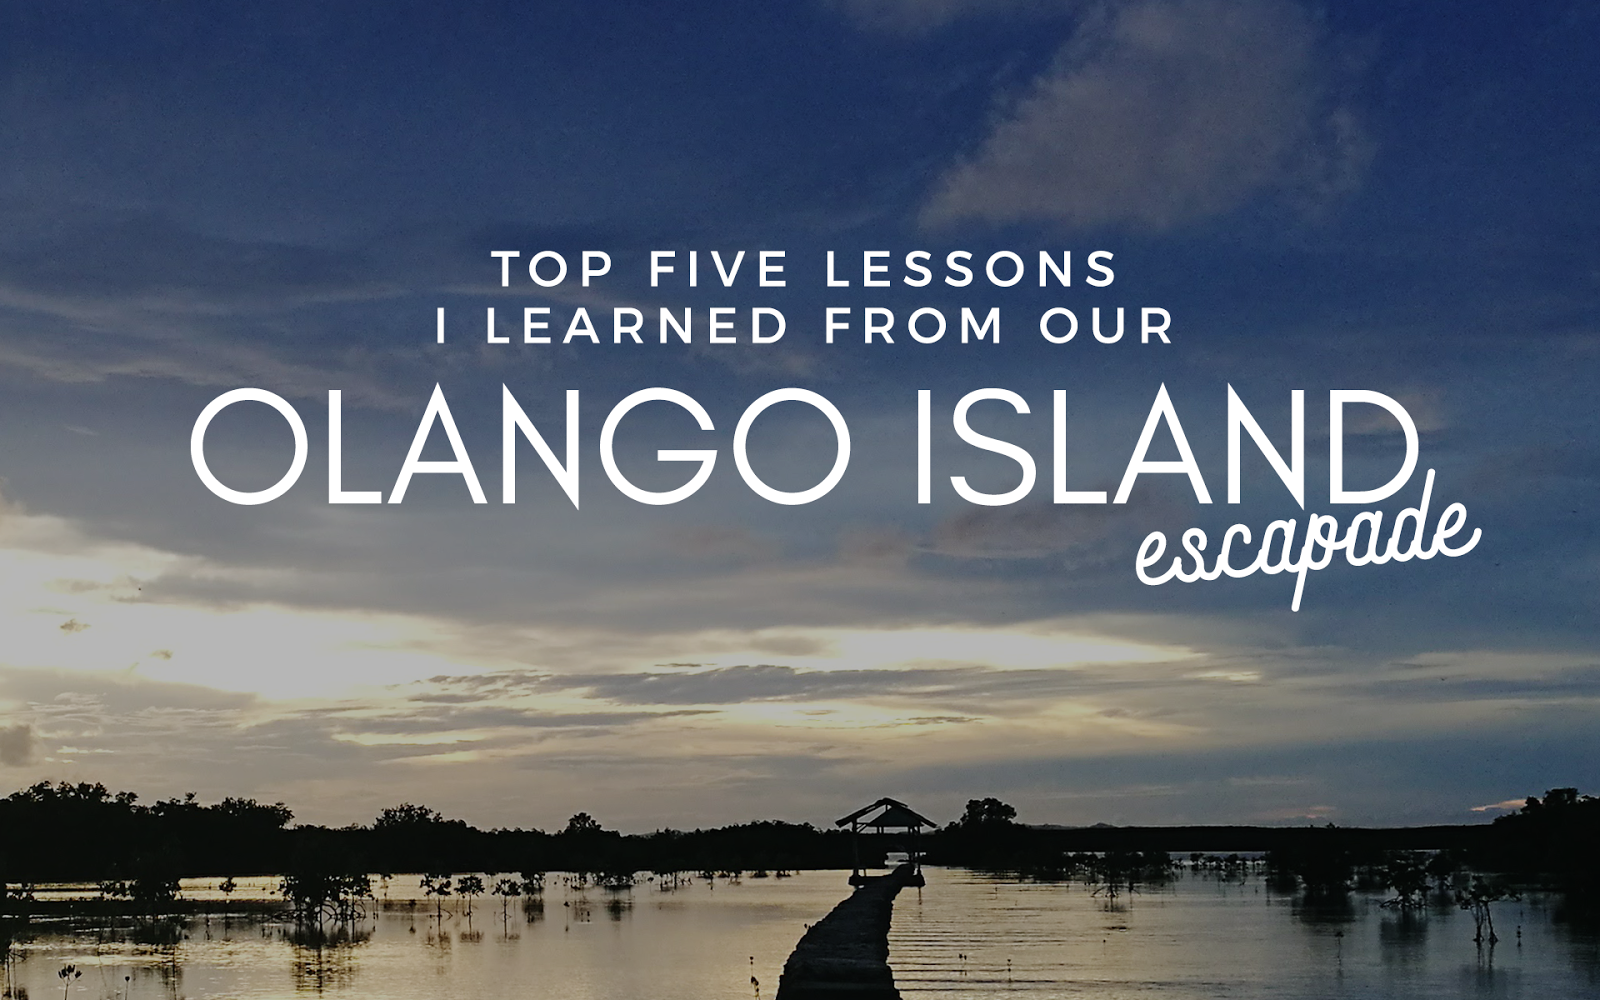 Top Five Lessons I Learned from our Olango Island Escapade